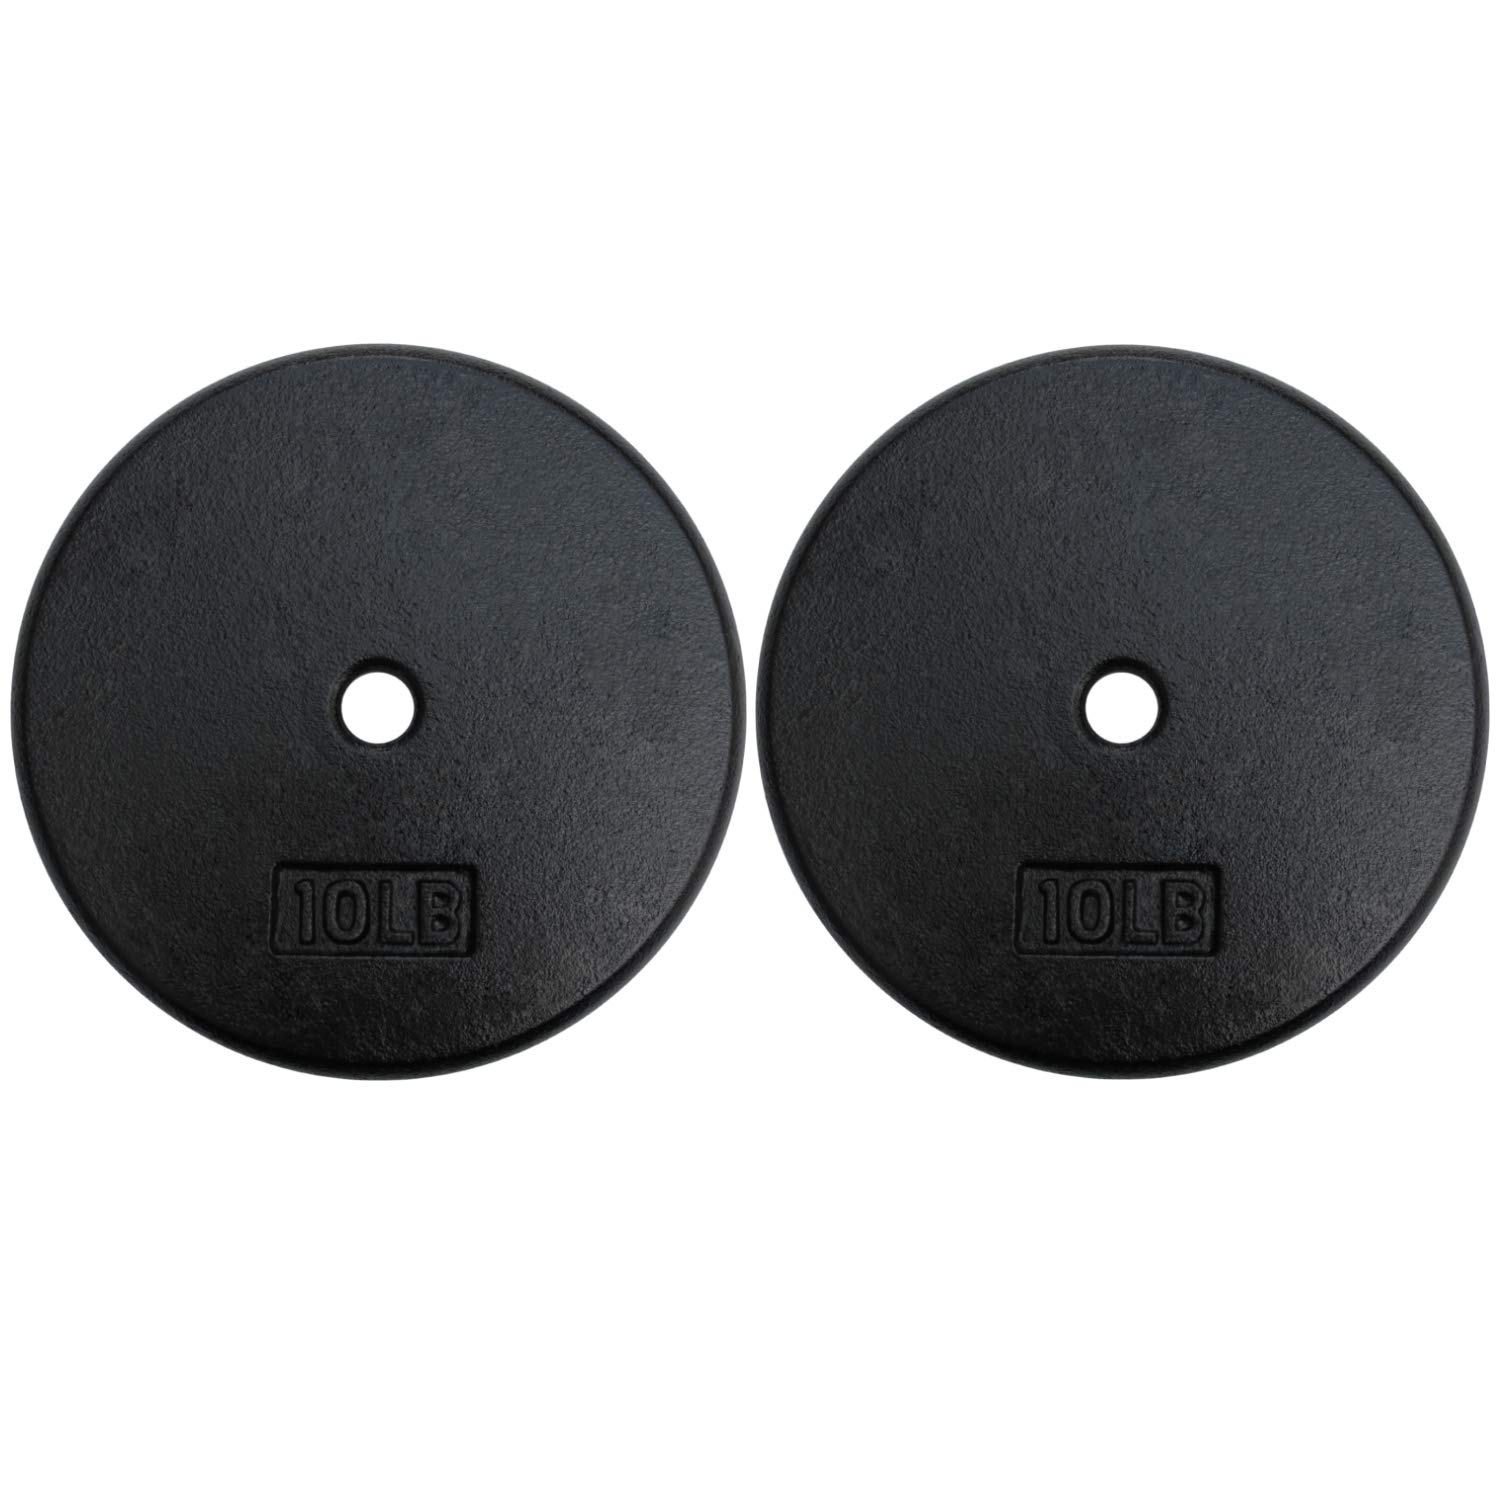 A2ZCARE Standard Cast Iron Weight Plates 1-Inch Center-Hole for Dumbbells, Standard Barbell 10, 15, 20, 25 lbs (10 lbs - Pair)